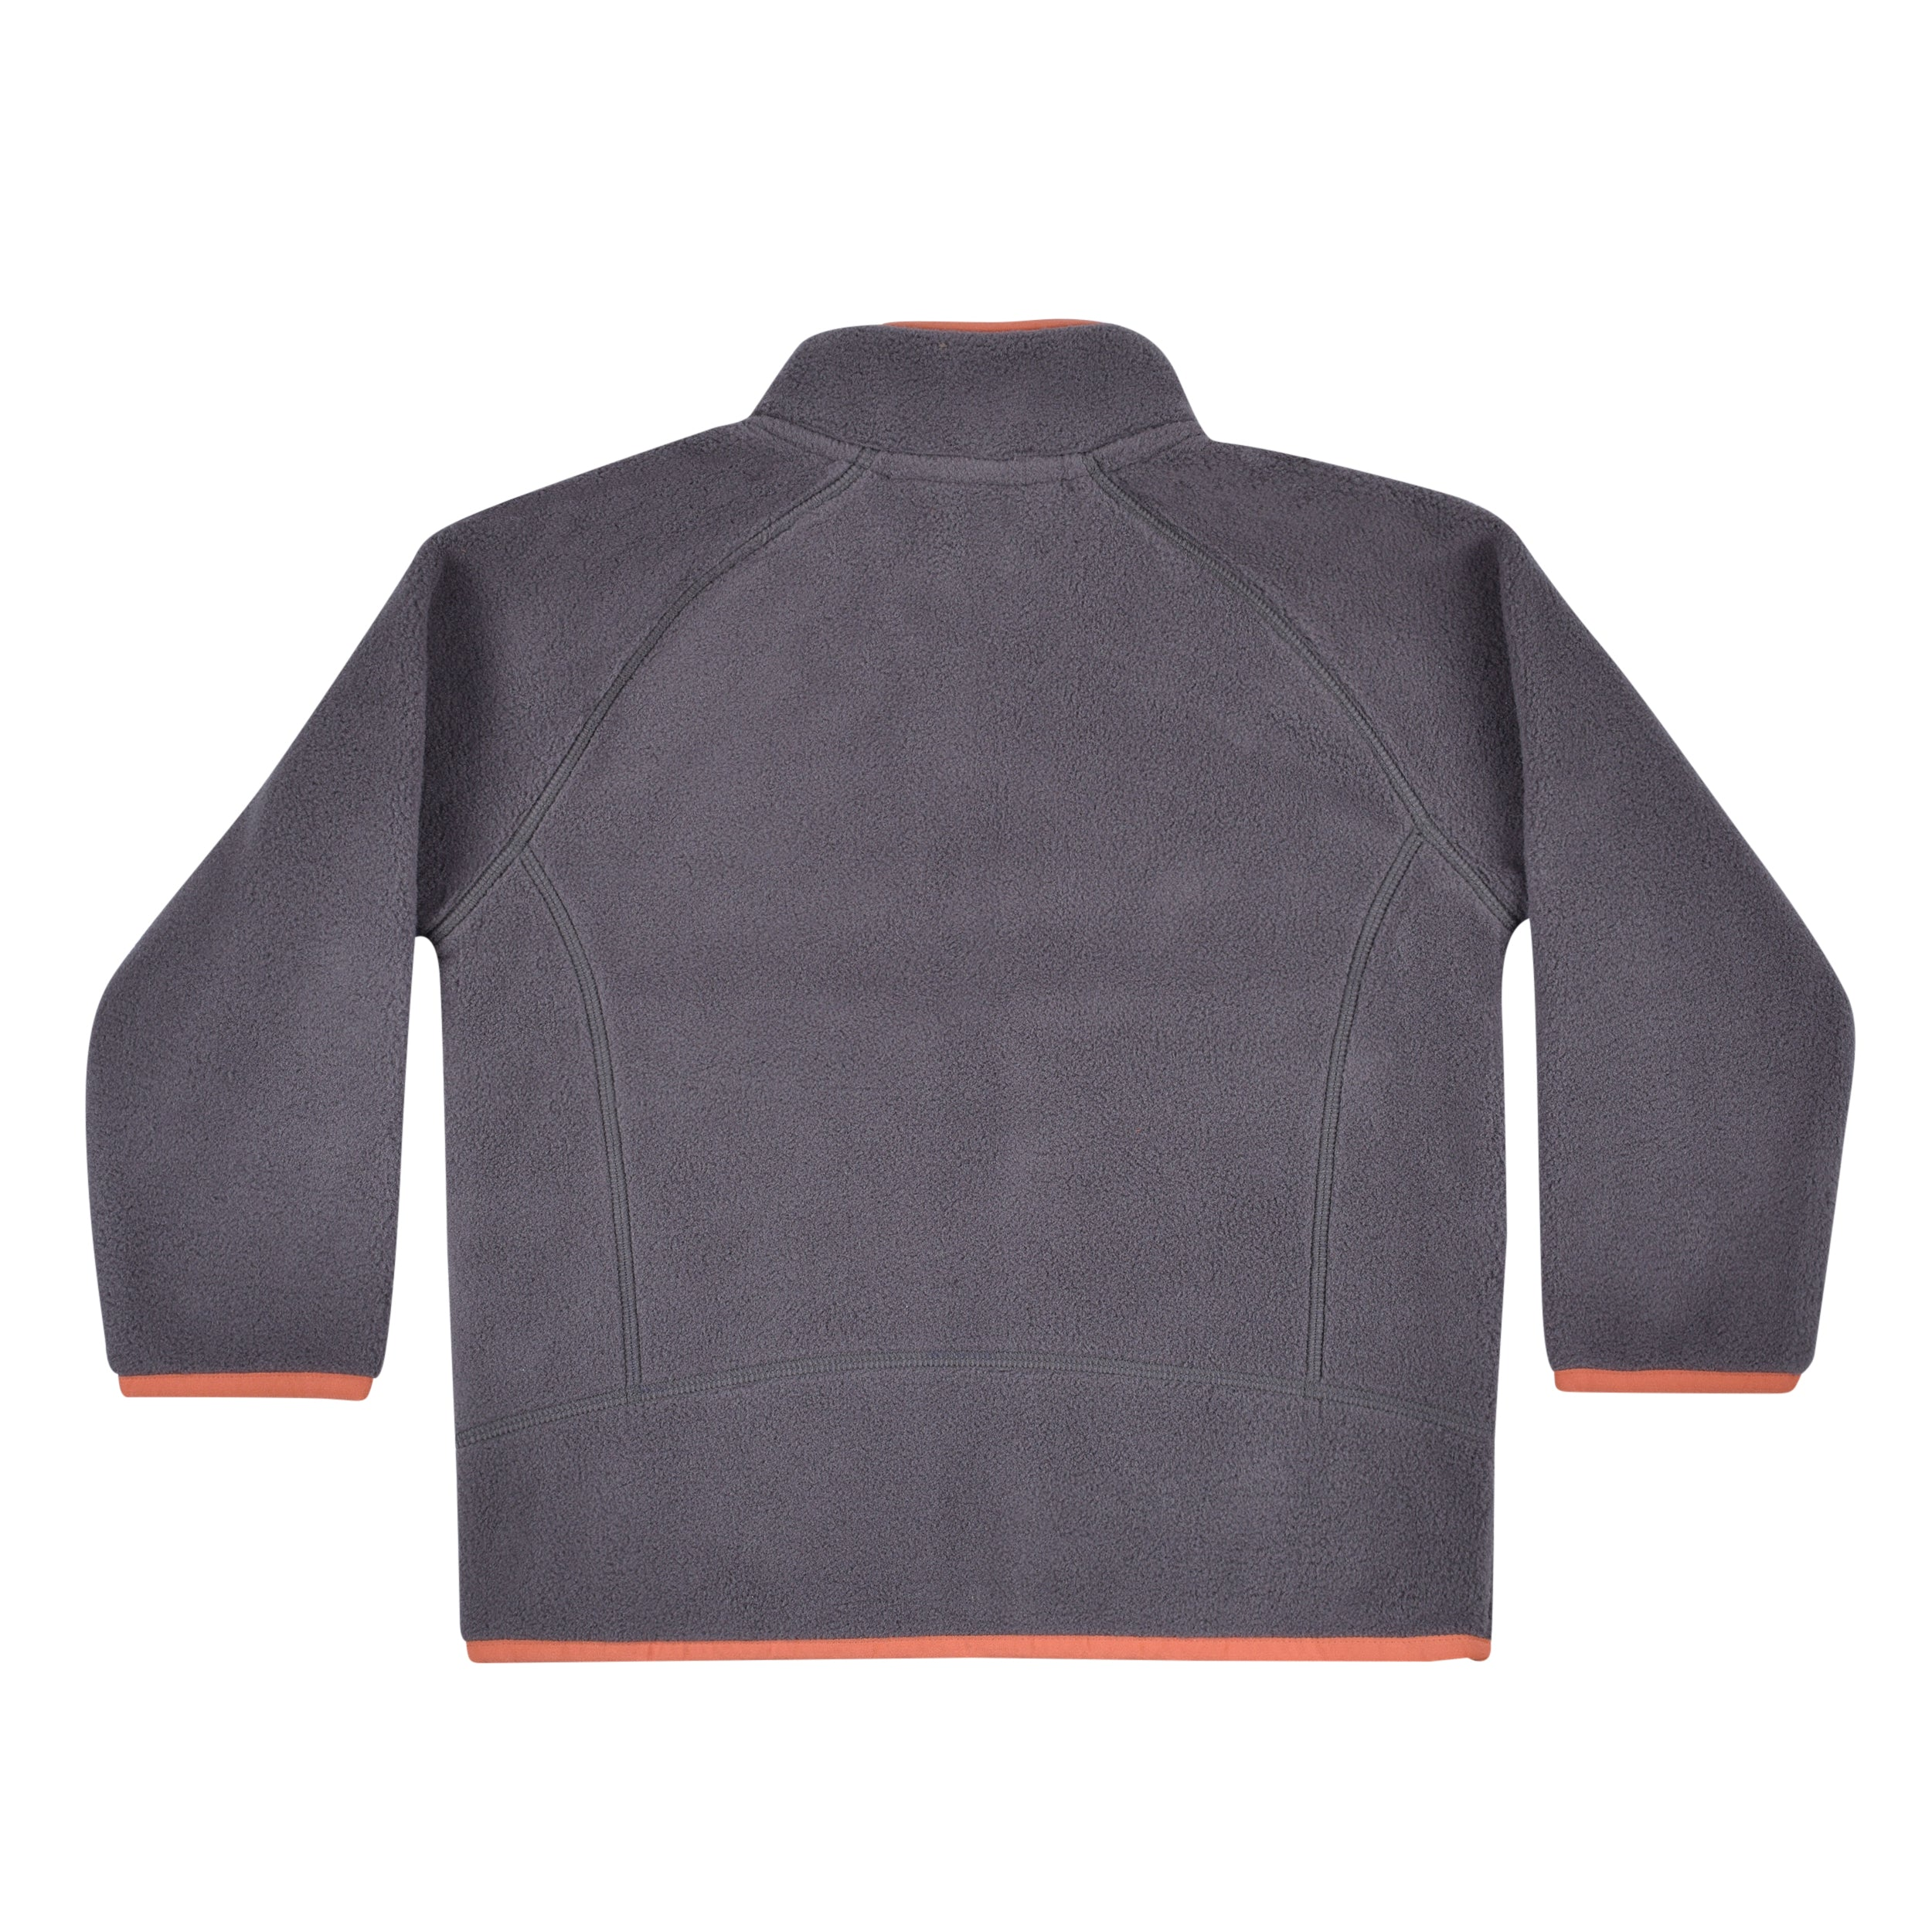 300 Series Polartec® Fleece Jacket, Ash  (Sizing runs small, recommend sizing up)